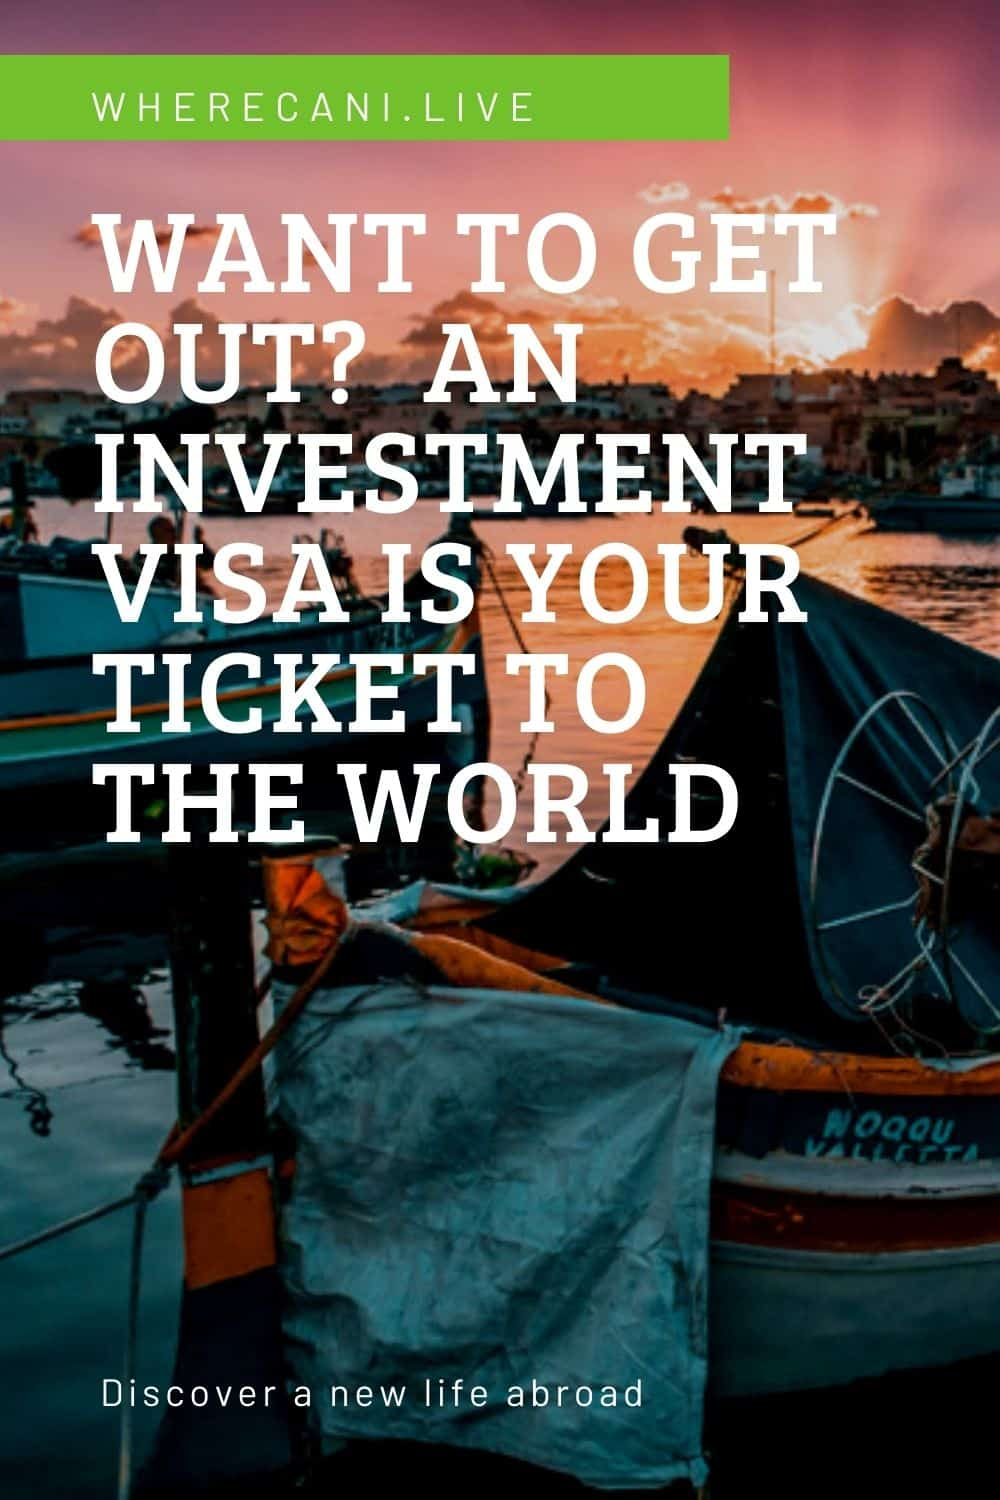 Want to get out?  An investment visa is your ticket to the world.  See more here. #investment #visa #world #travel #expat #liveabroad via @wherecanilive